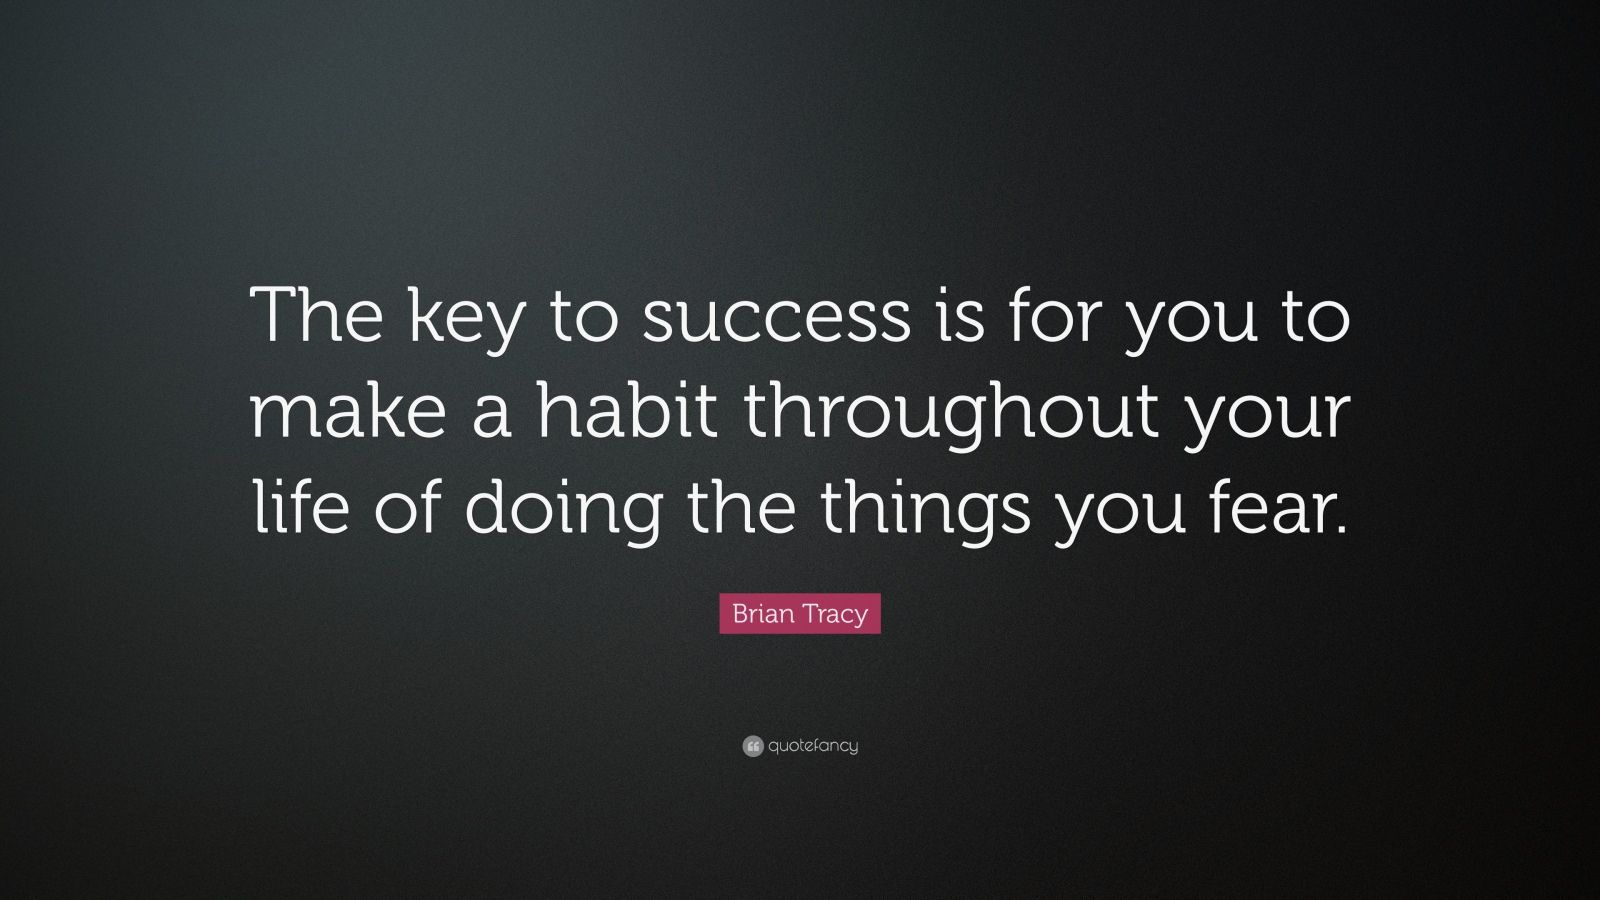 """Brian Tracy Quote: """"The key to success is for you to make a habit throughout your life of doing the things you fear."""""""